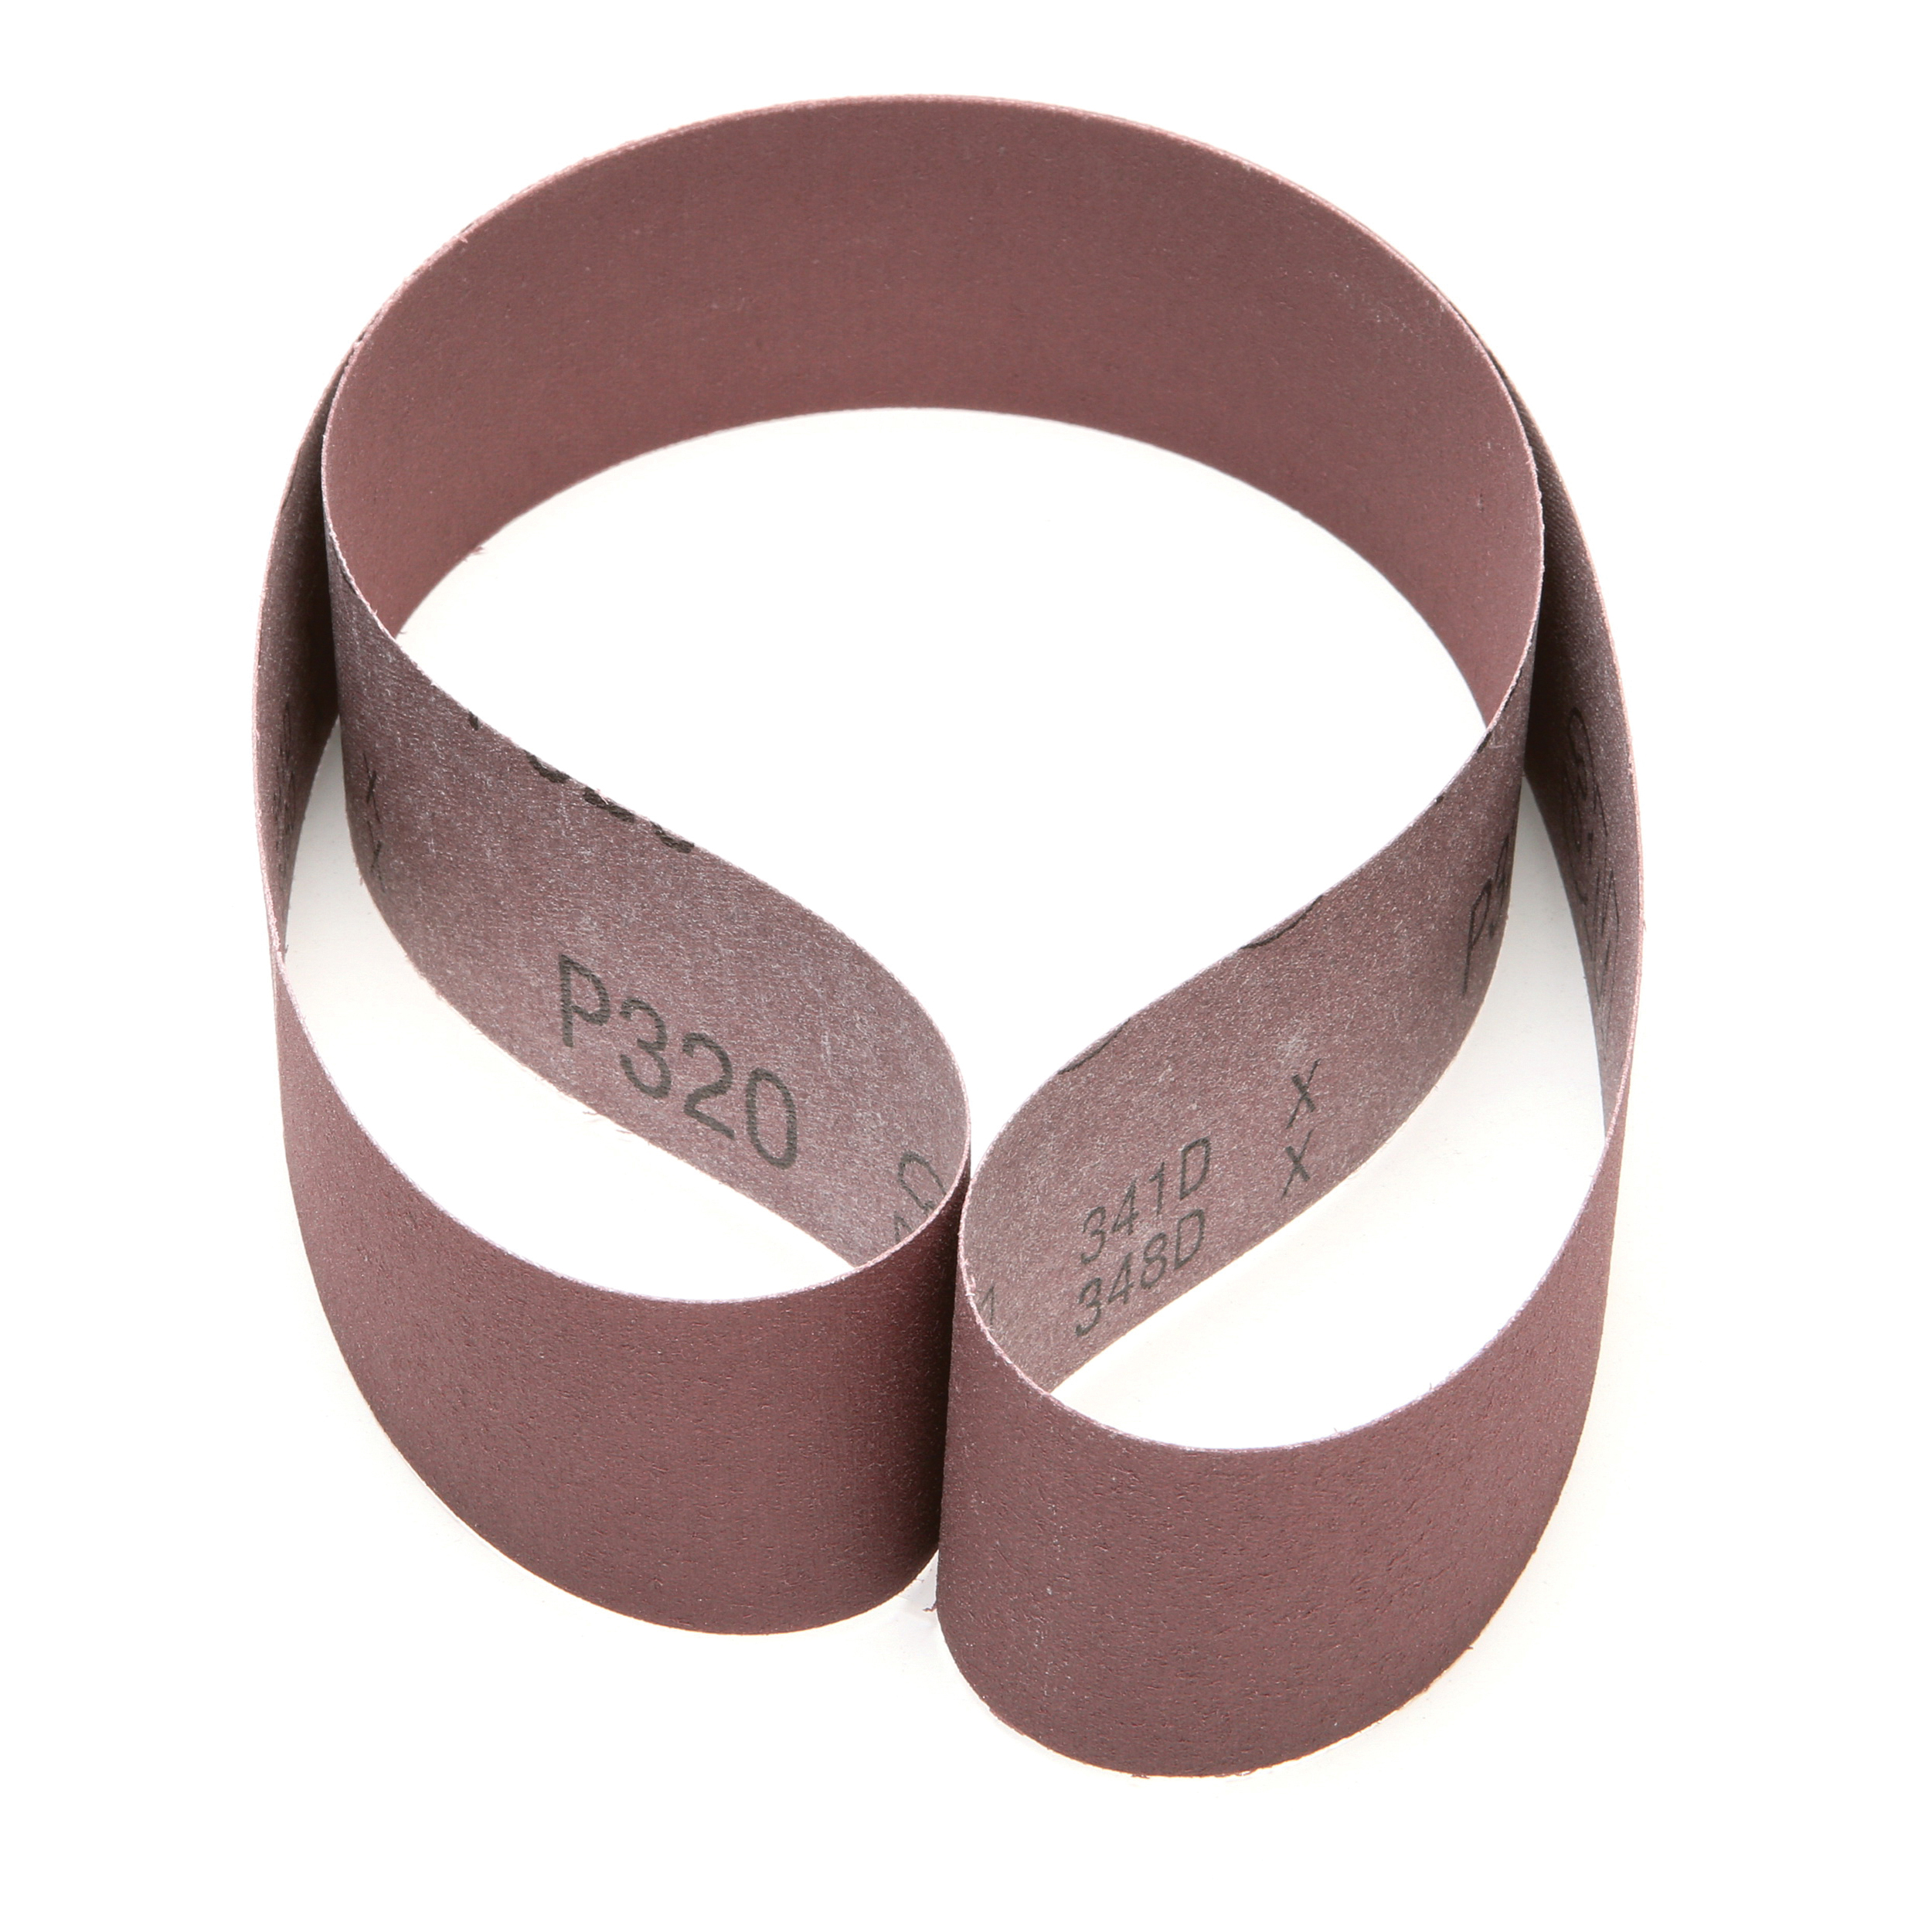 3M™ 051144-85375 Narrow Coated Abrasive Belt, 2 in W x 48 in L, P320 Grit, Very Fine Grade, Aluminum Oxide Abrasive, Cloth Backing